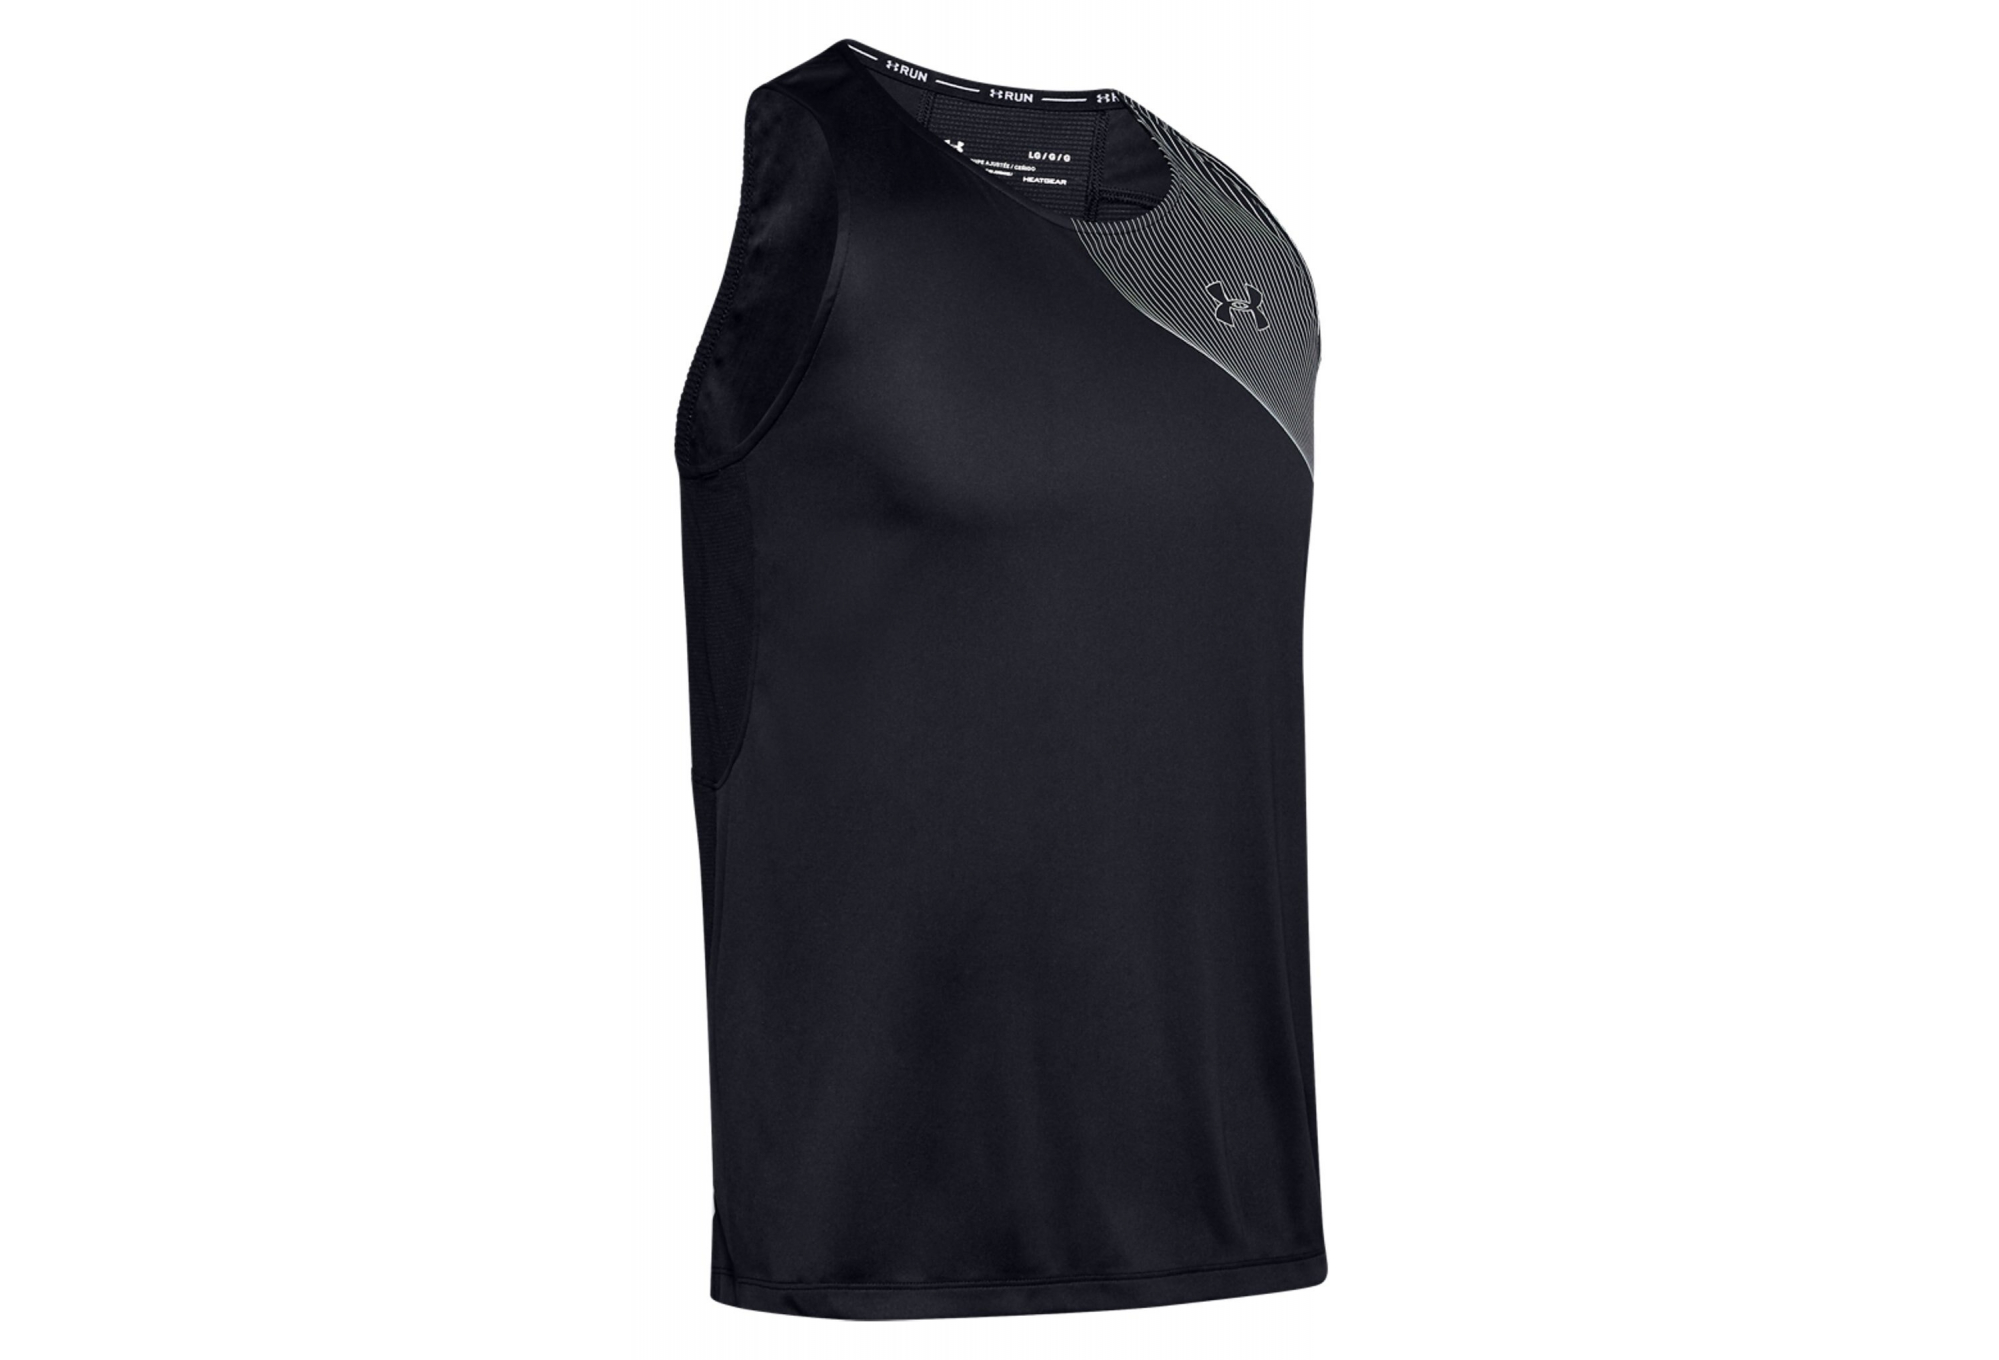 césped flor Lechuguilla  Camiseta sin mangas Under Armour Qualifier Iso-Chill negro hombre |  Alltricks.es